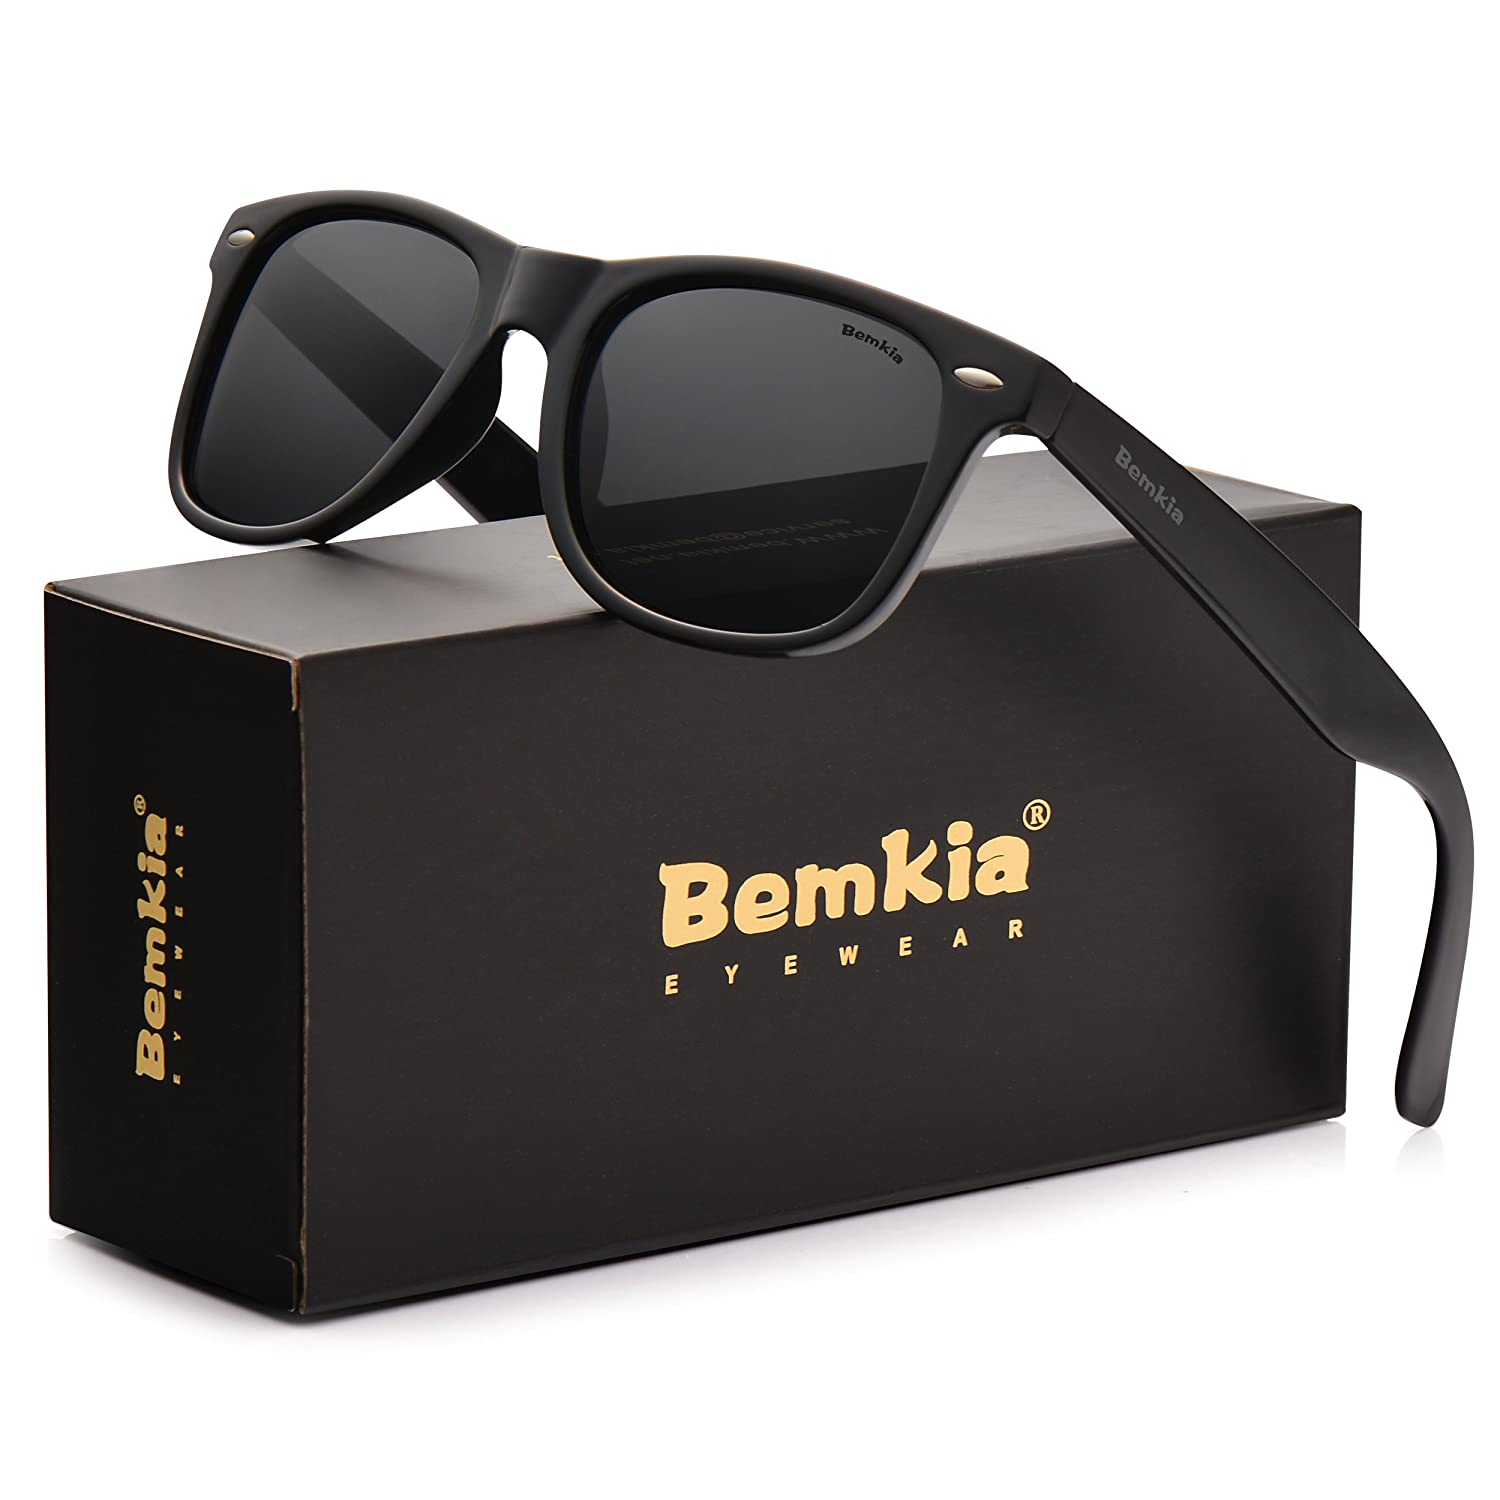 Bemkia Men Wayfarer Sunglasses Polarized Women UV 400 Protection 54 MM